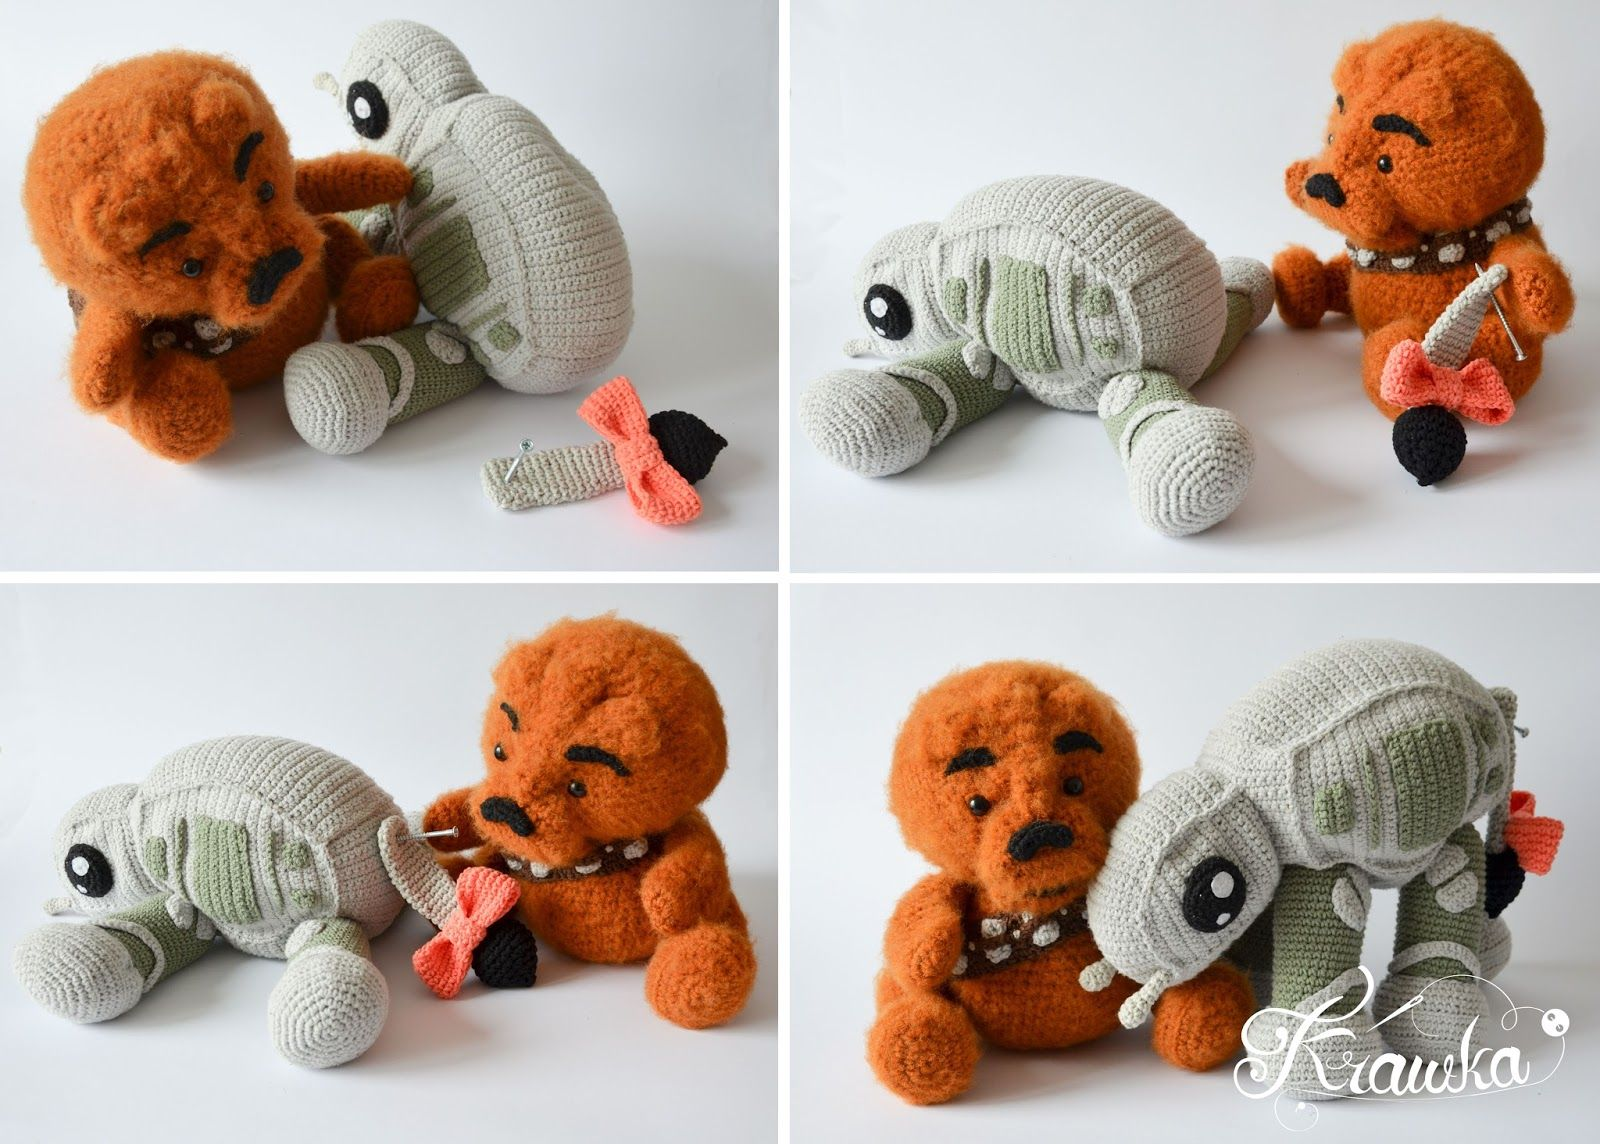 Krawka: Winnie the Pooh and Chewbacca mashed up in one character ...